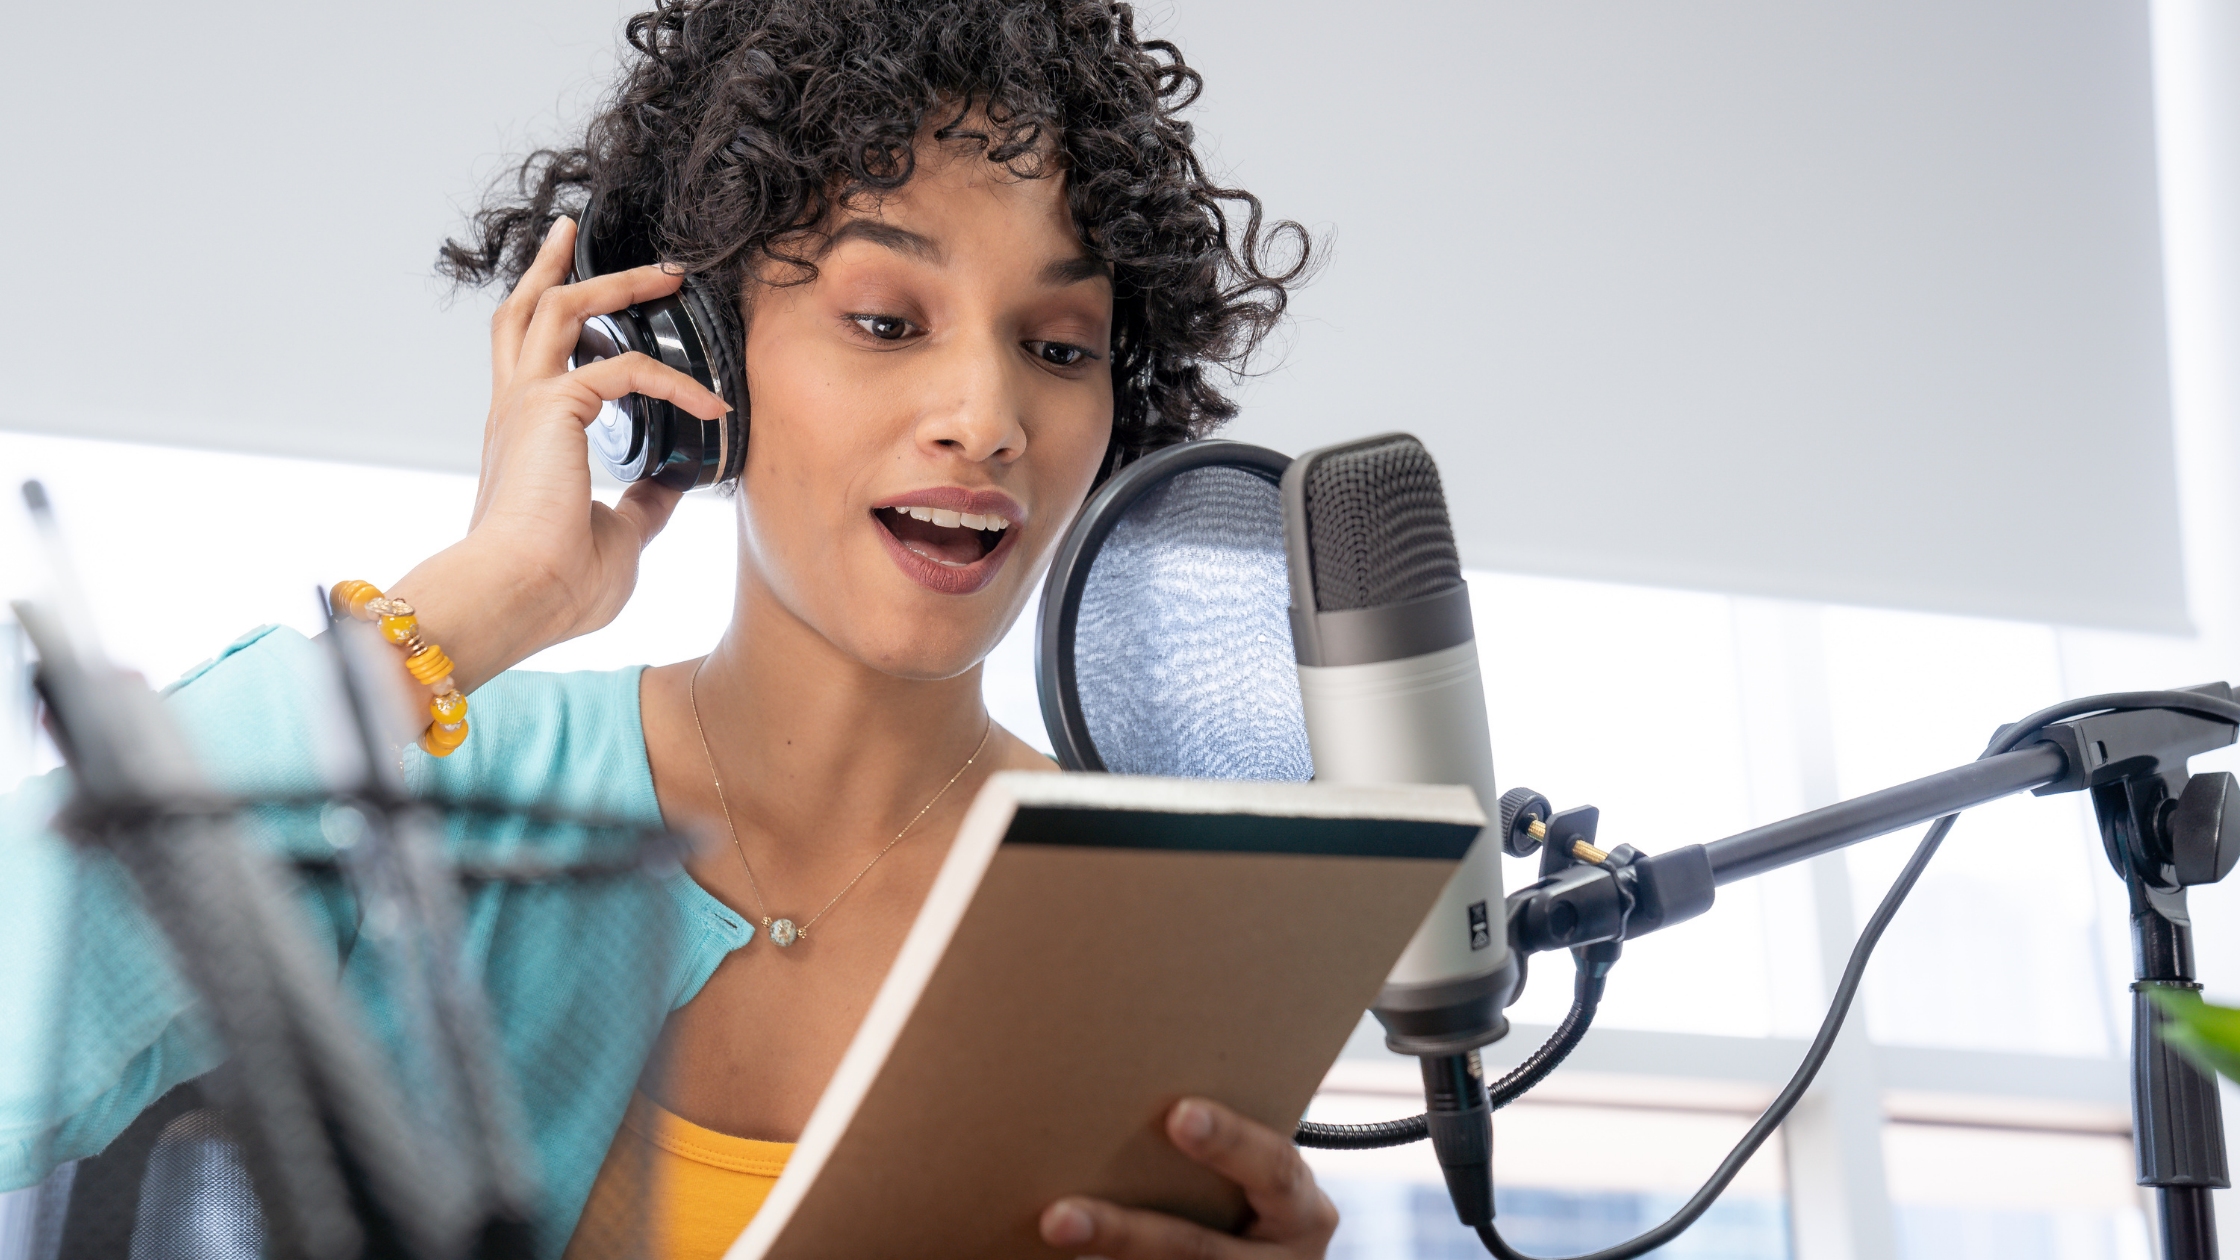 Woman sharing information with donors via podcast